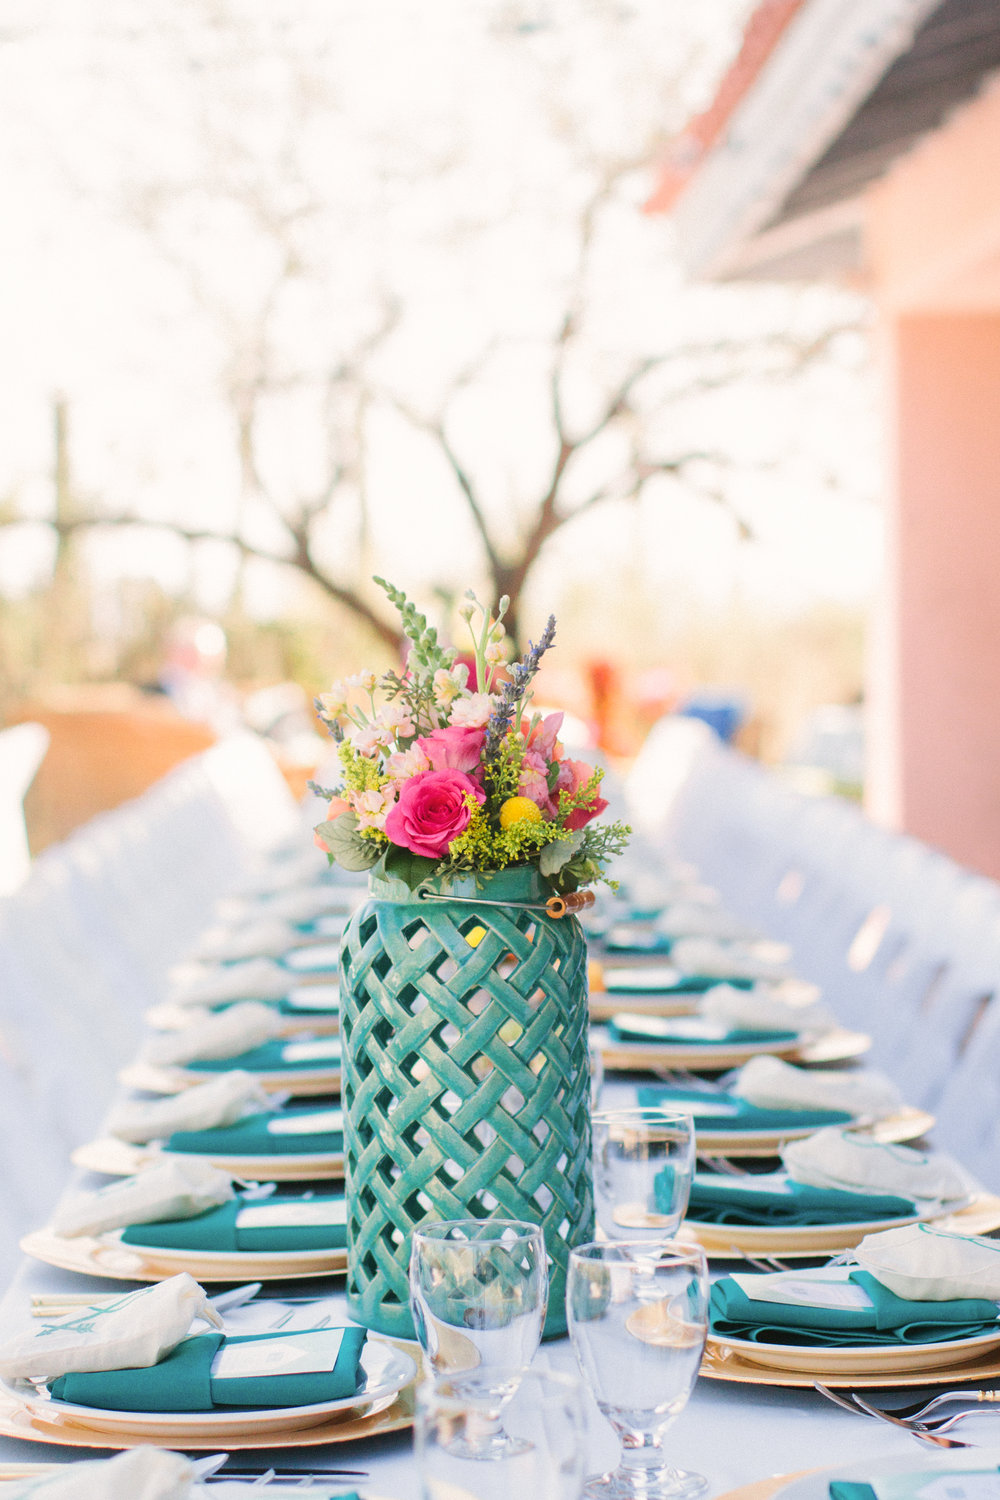 Spring table settings with colorful florals and teal lanterns